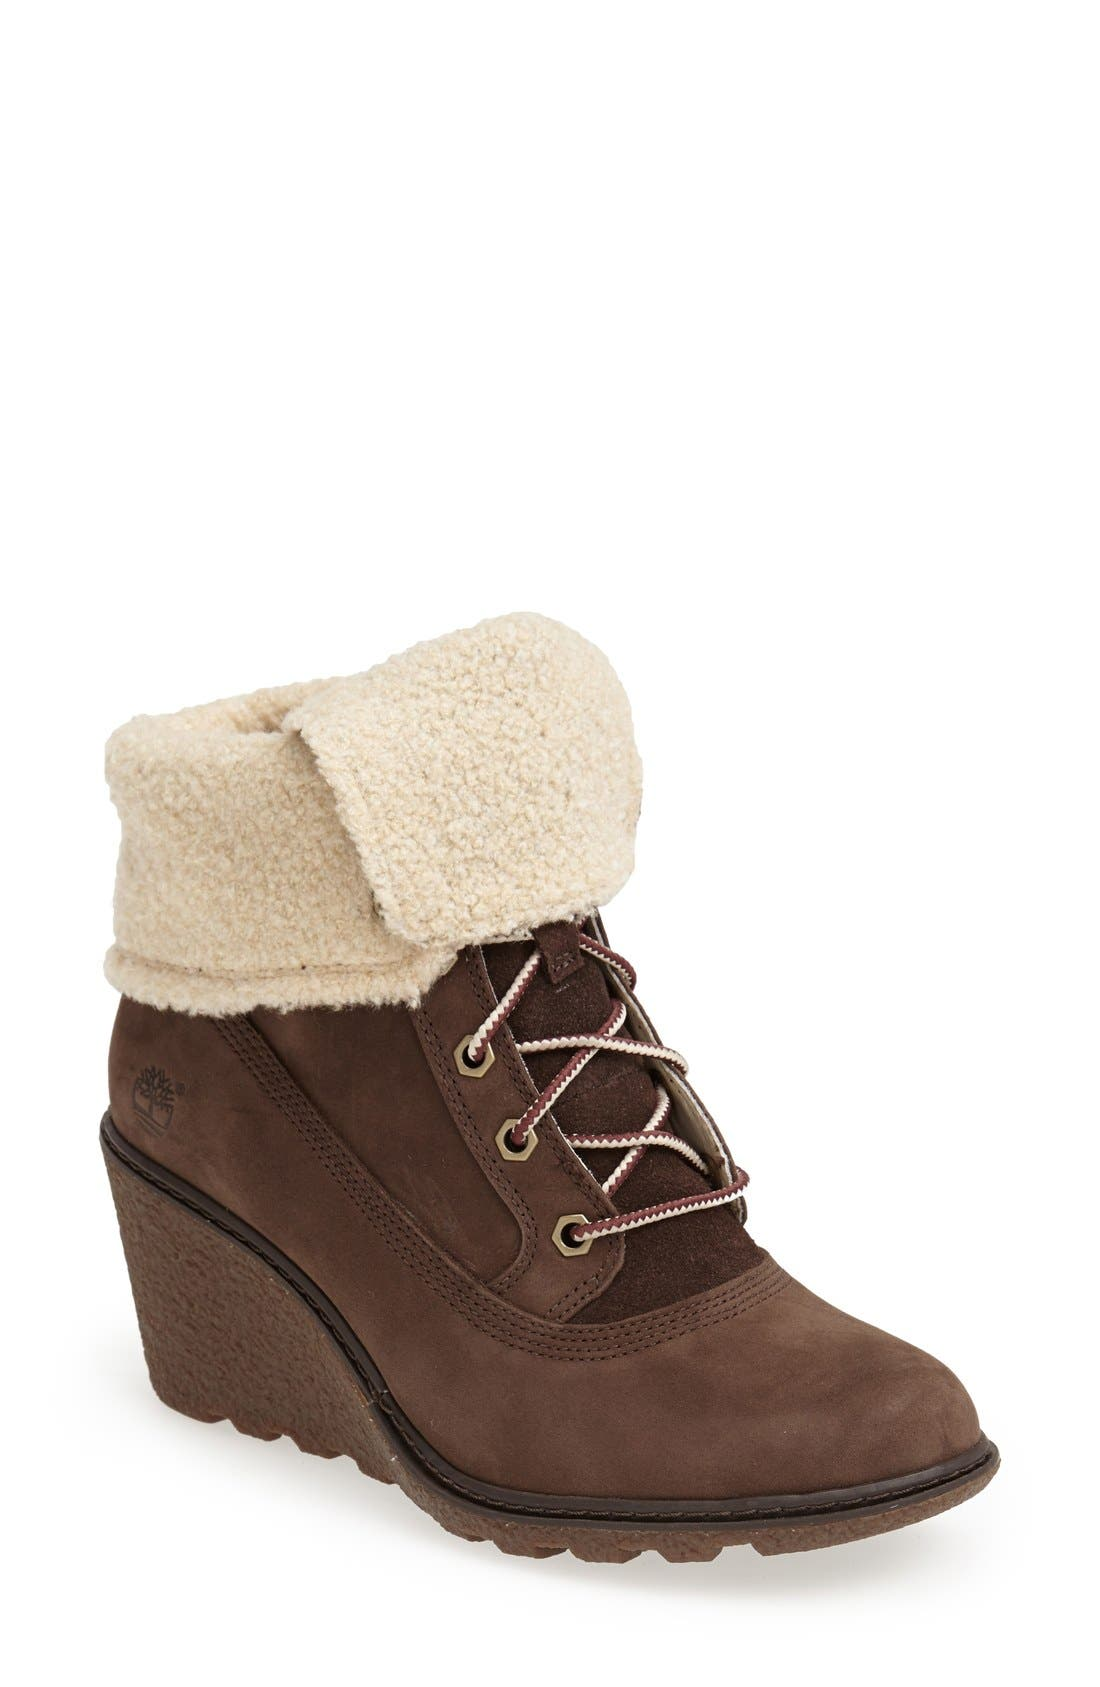 Alternate Image 1 Selected - Timberland Earthkeepers® 'Amston' Wedge Boot (Women)